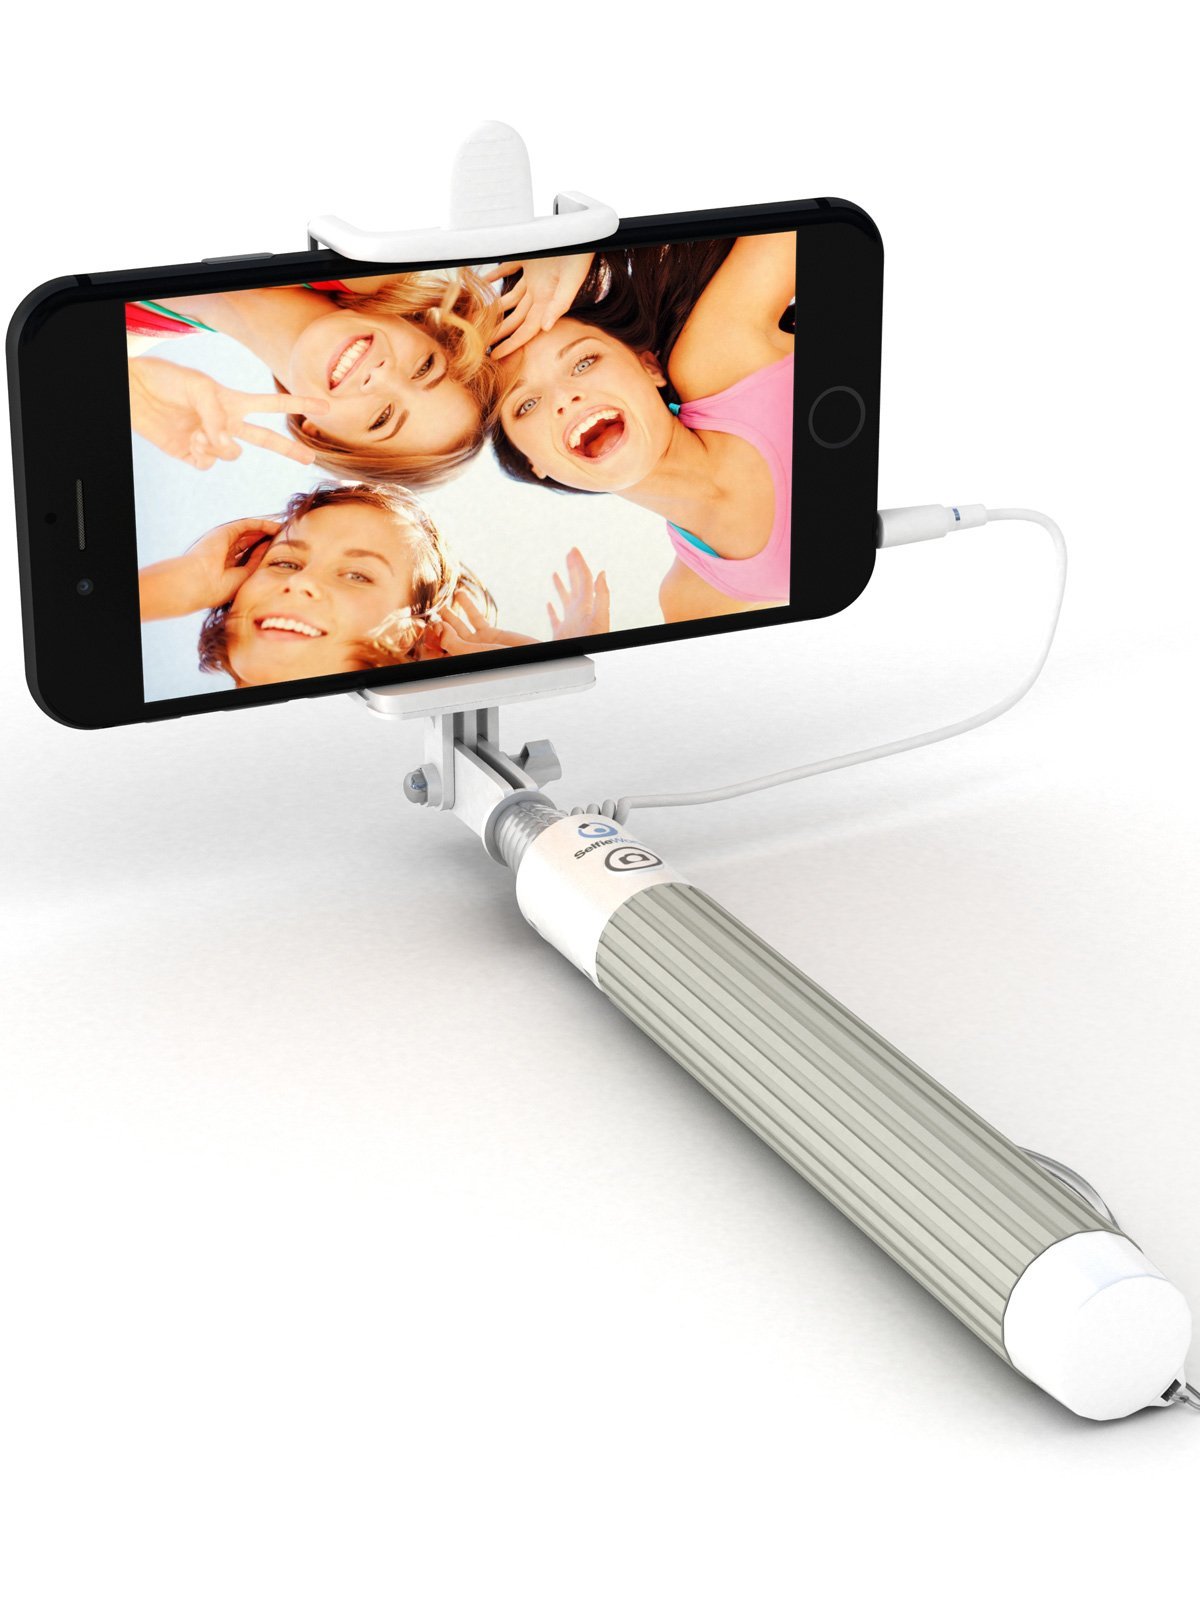 Premium 5-in-1 Wired Selfie Stick for iPhone 6 5, Samsung Galaxy S10 S9 S8 S7 S6 S5 - Takes Selfies in Seconds, Get Perfect HD Photos - No Apps, No Downloads, No Batteries Required